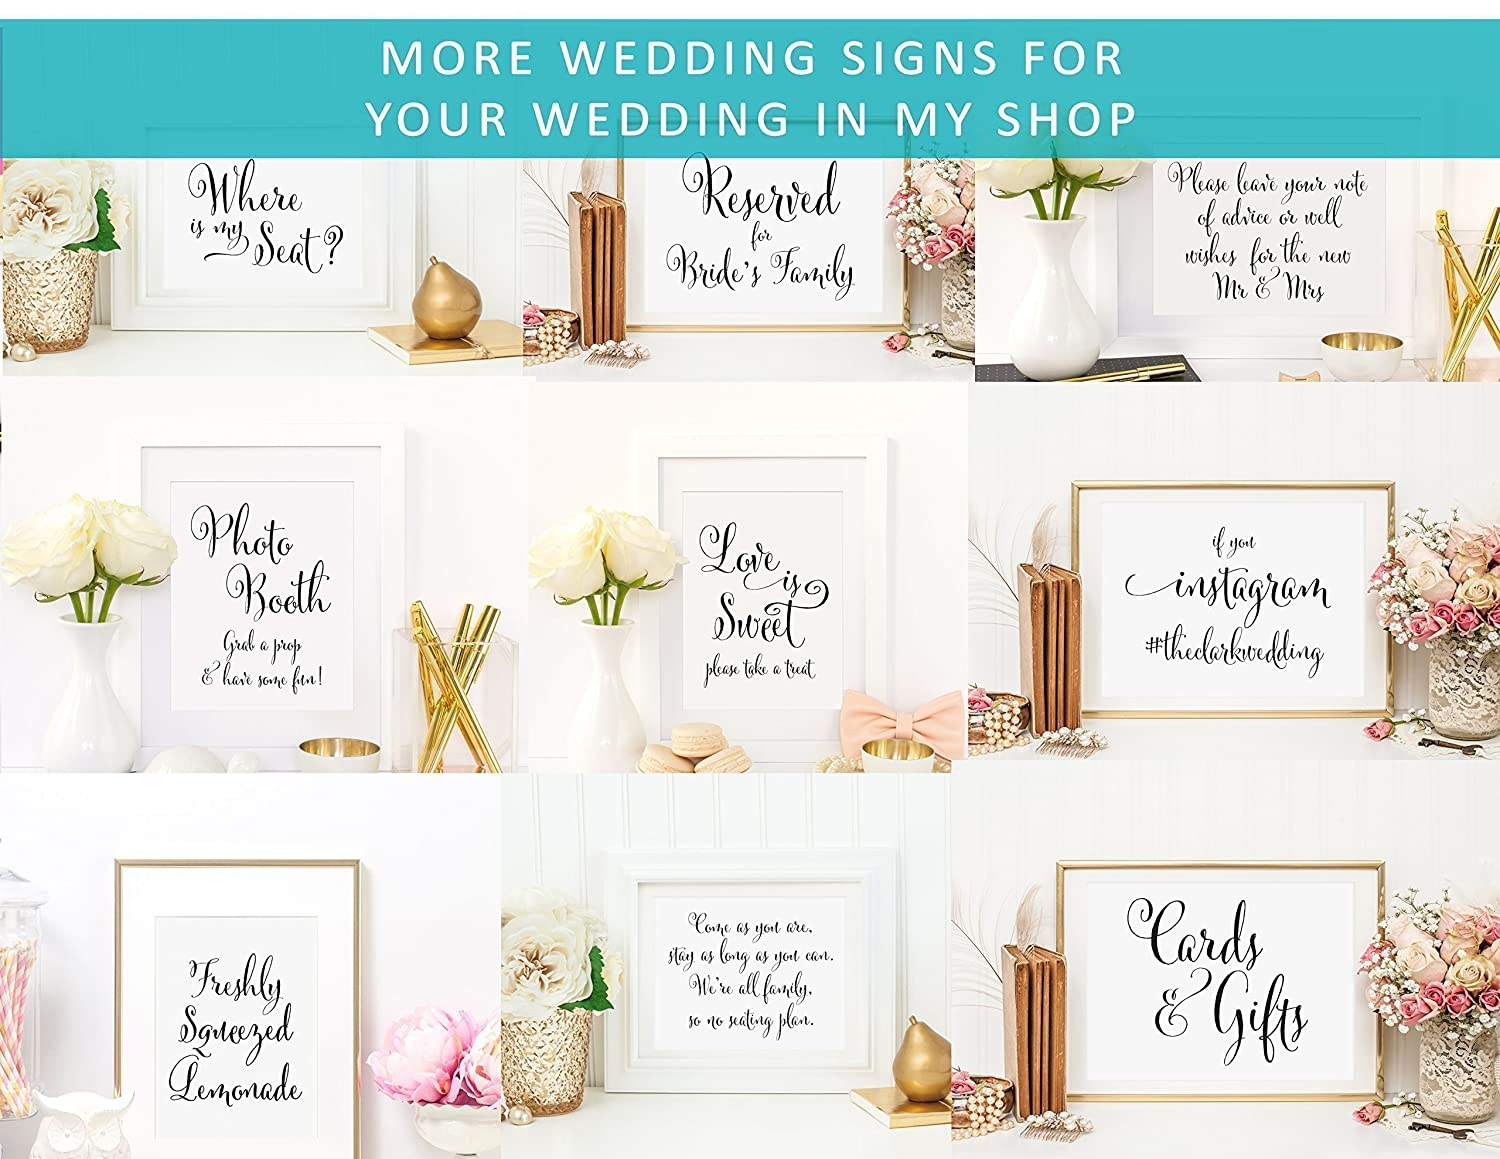 Wishing Well Sign Your Choice of Size and Color Print Sign Wedding Well Wishes Wishes for the Bride and Groom UNFRAMED Write Us a Message with Your Thoughts.Advice Sign